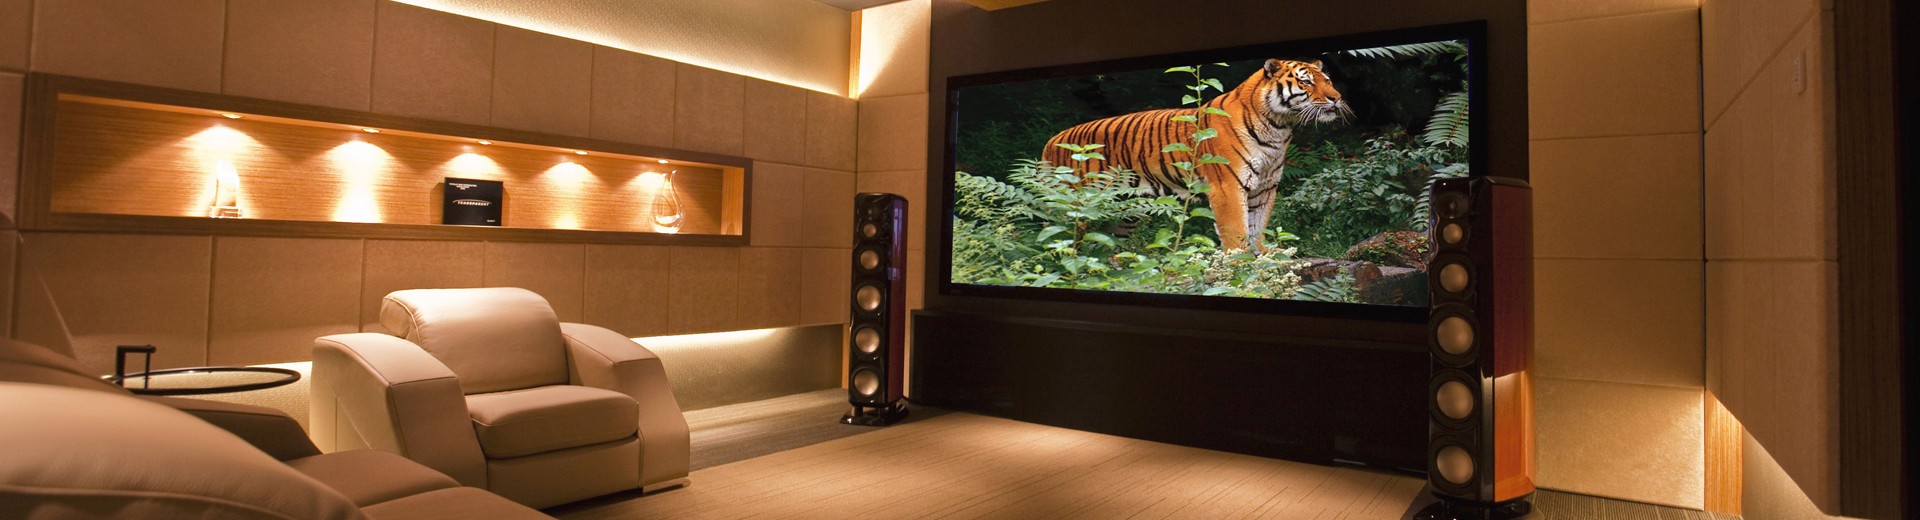 hometheatre-6